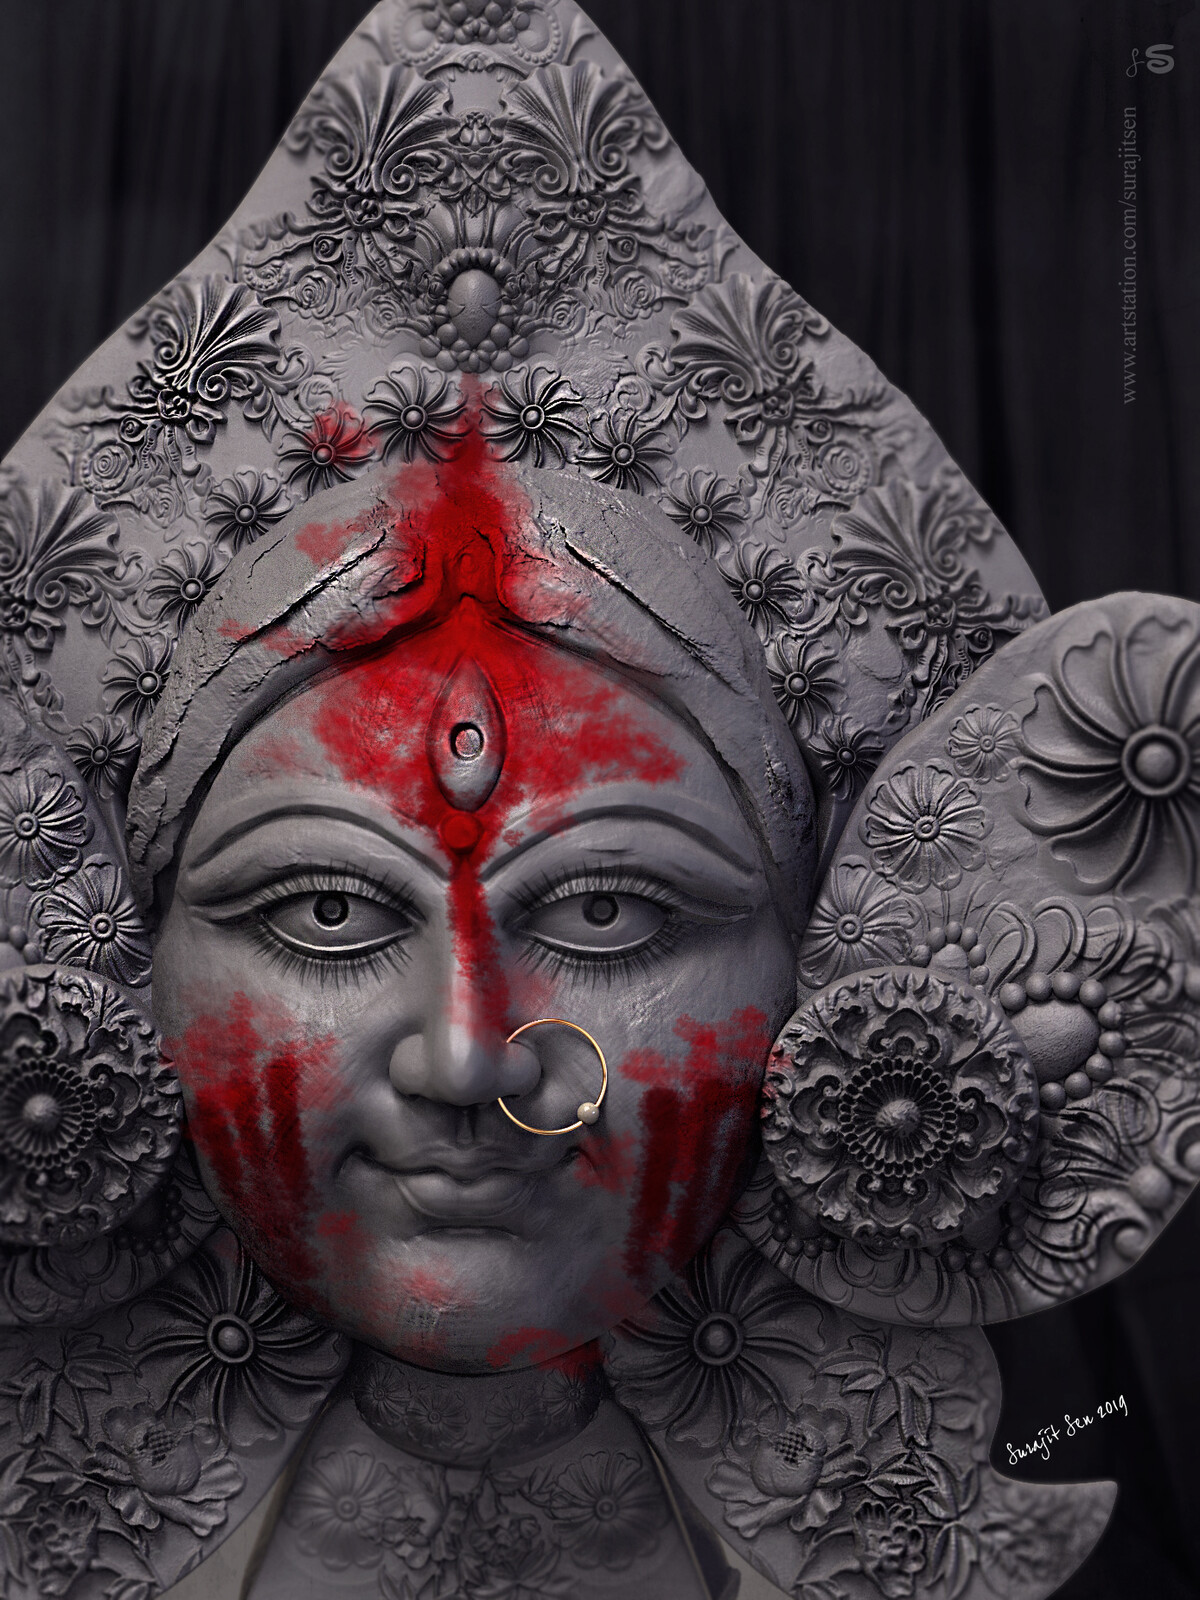 Happy Vijaya Dasami Digital Sculpture. Tried to make a form of my thoughts...